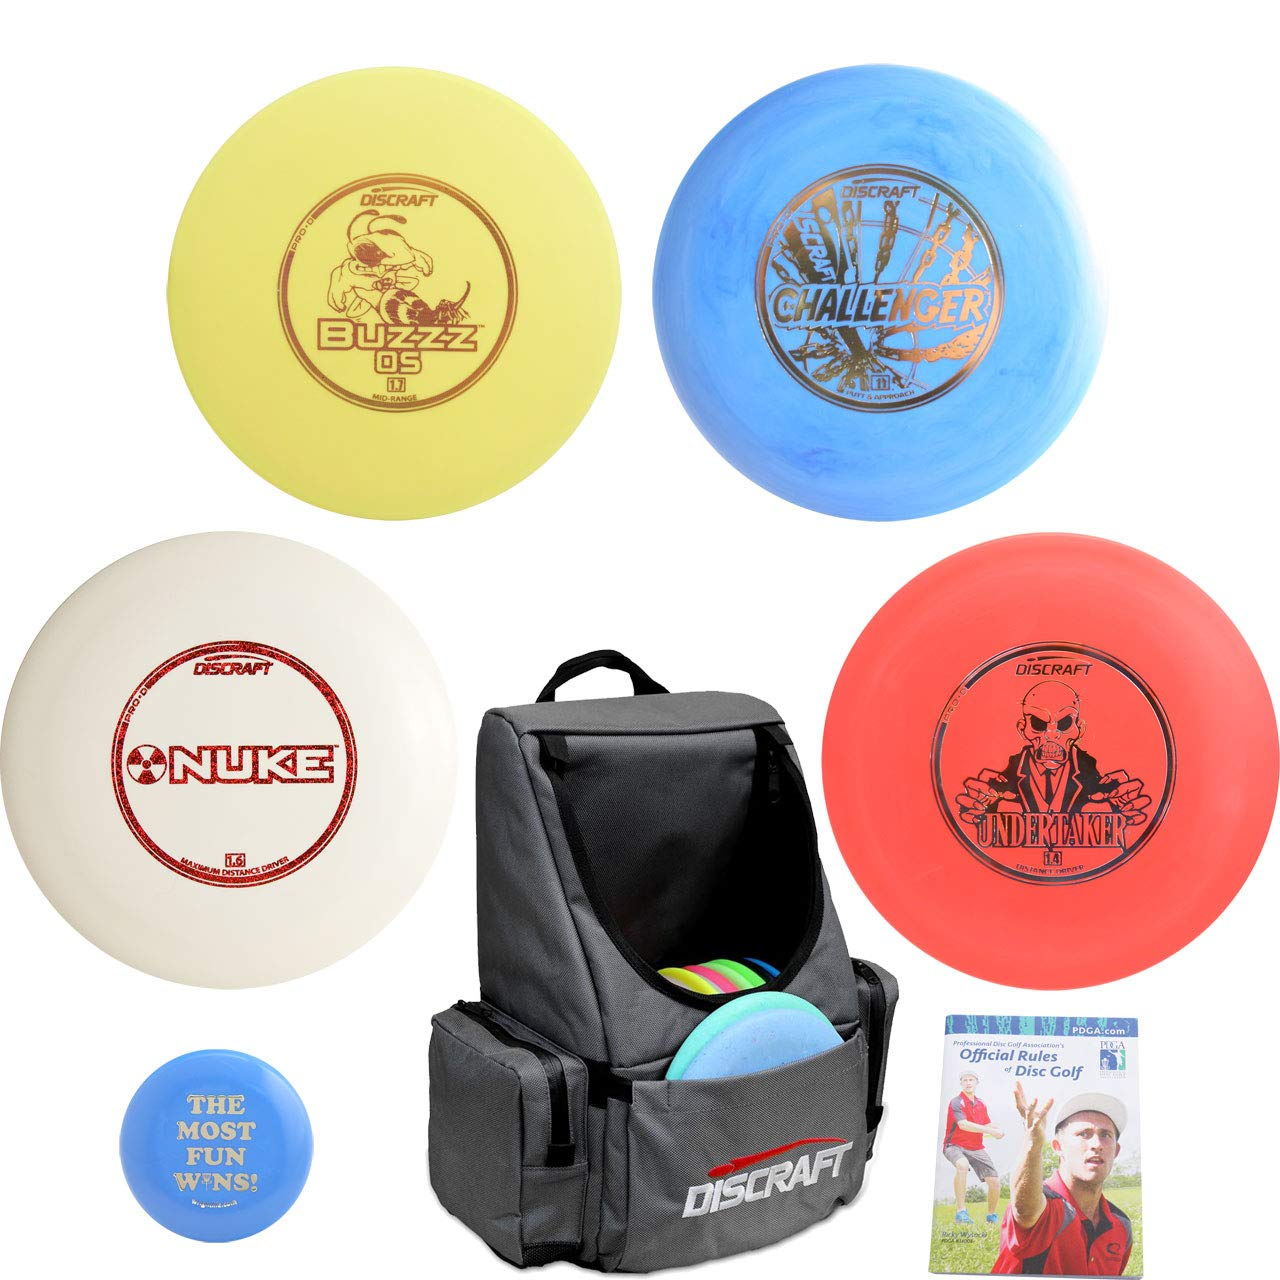 Discraft Complete Disc Golf Advanced Set Gift Bundle - Tournament Backpack Bag, 2 Drivers, Mid-Range, Putter + Mini Marker Disc & Rules (Gray) by Discraft